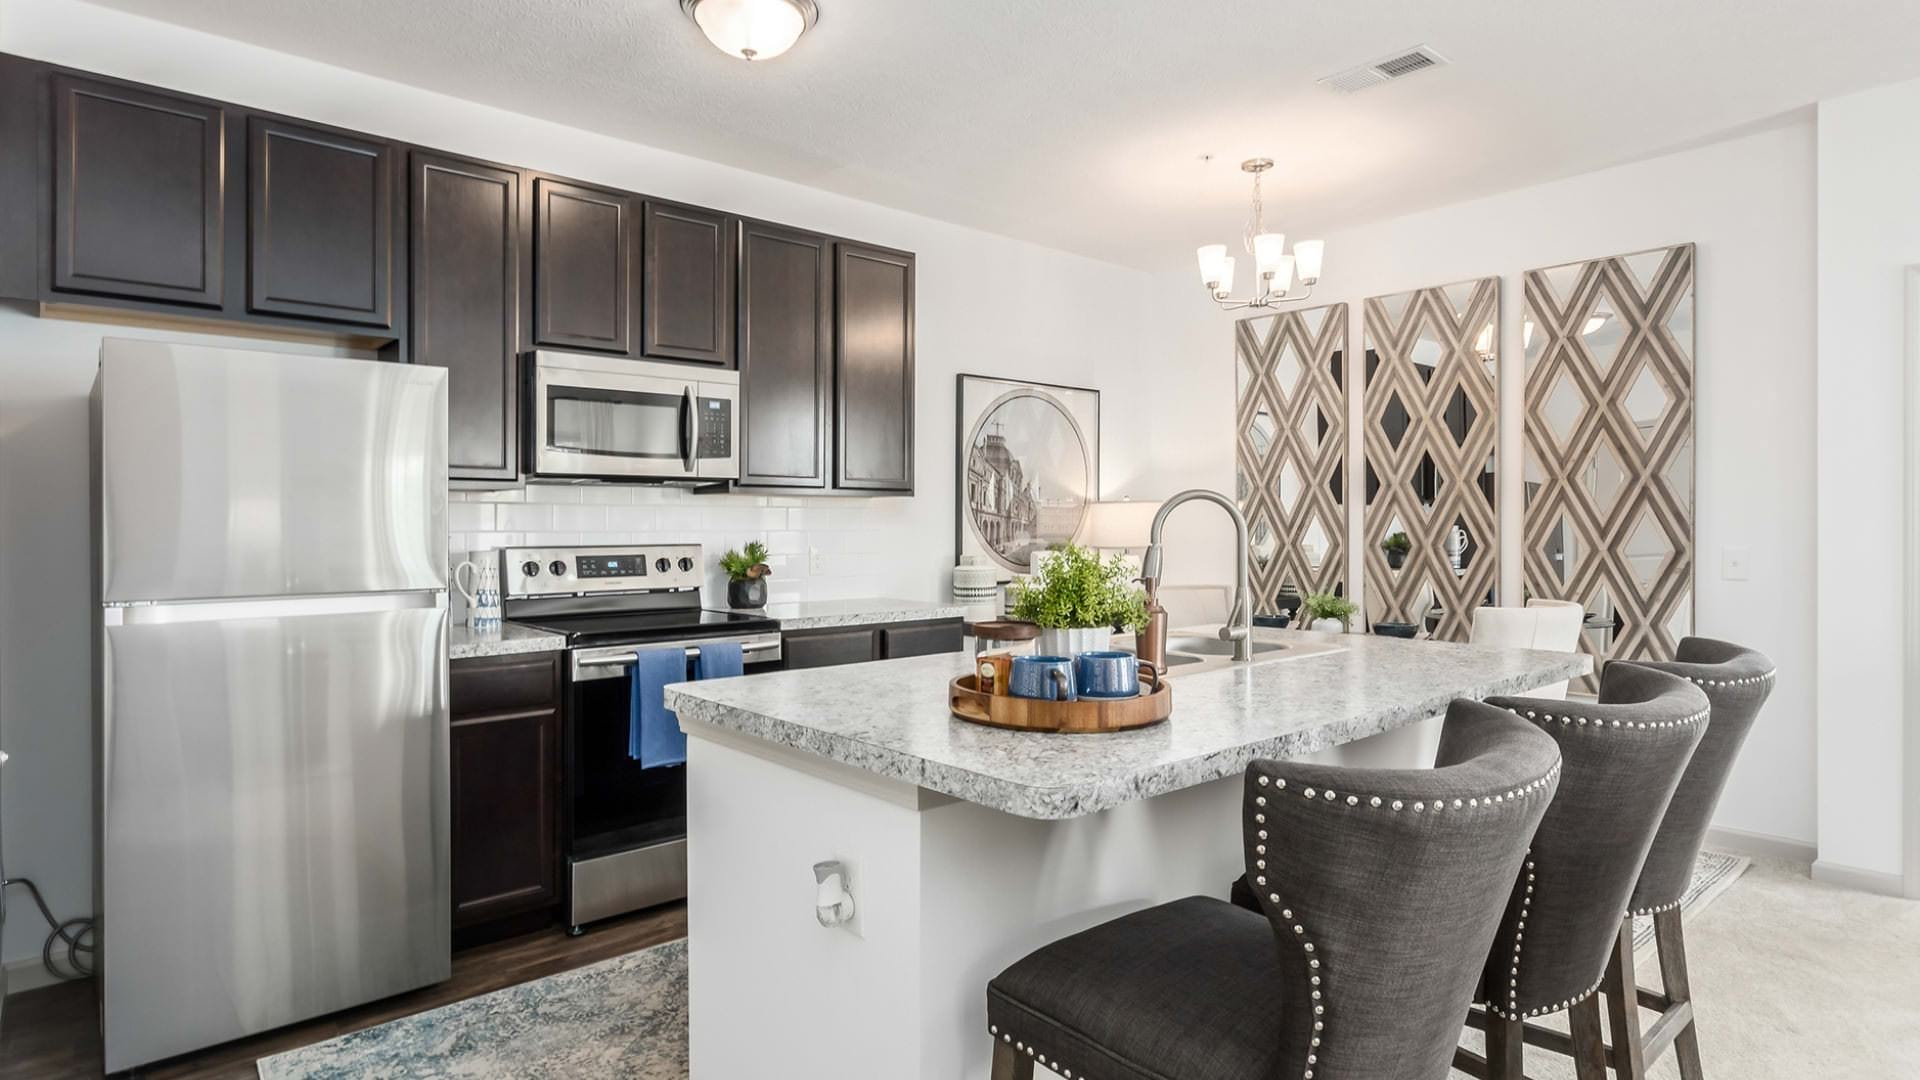 bright, open kitchen with island seating